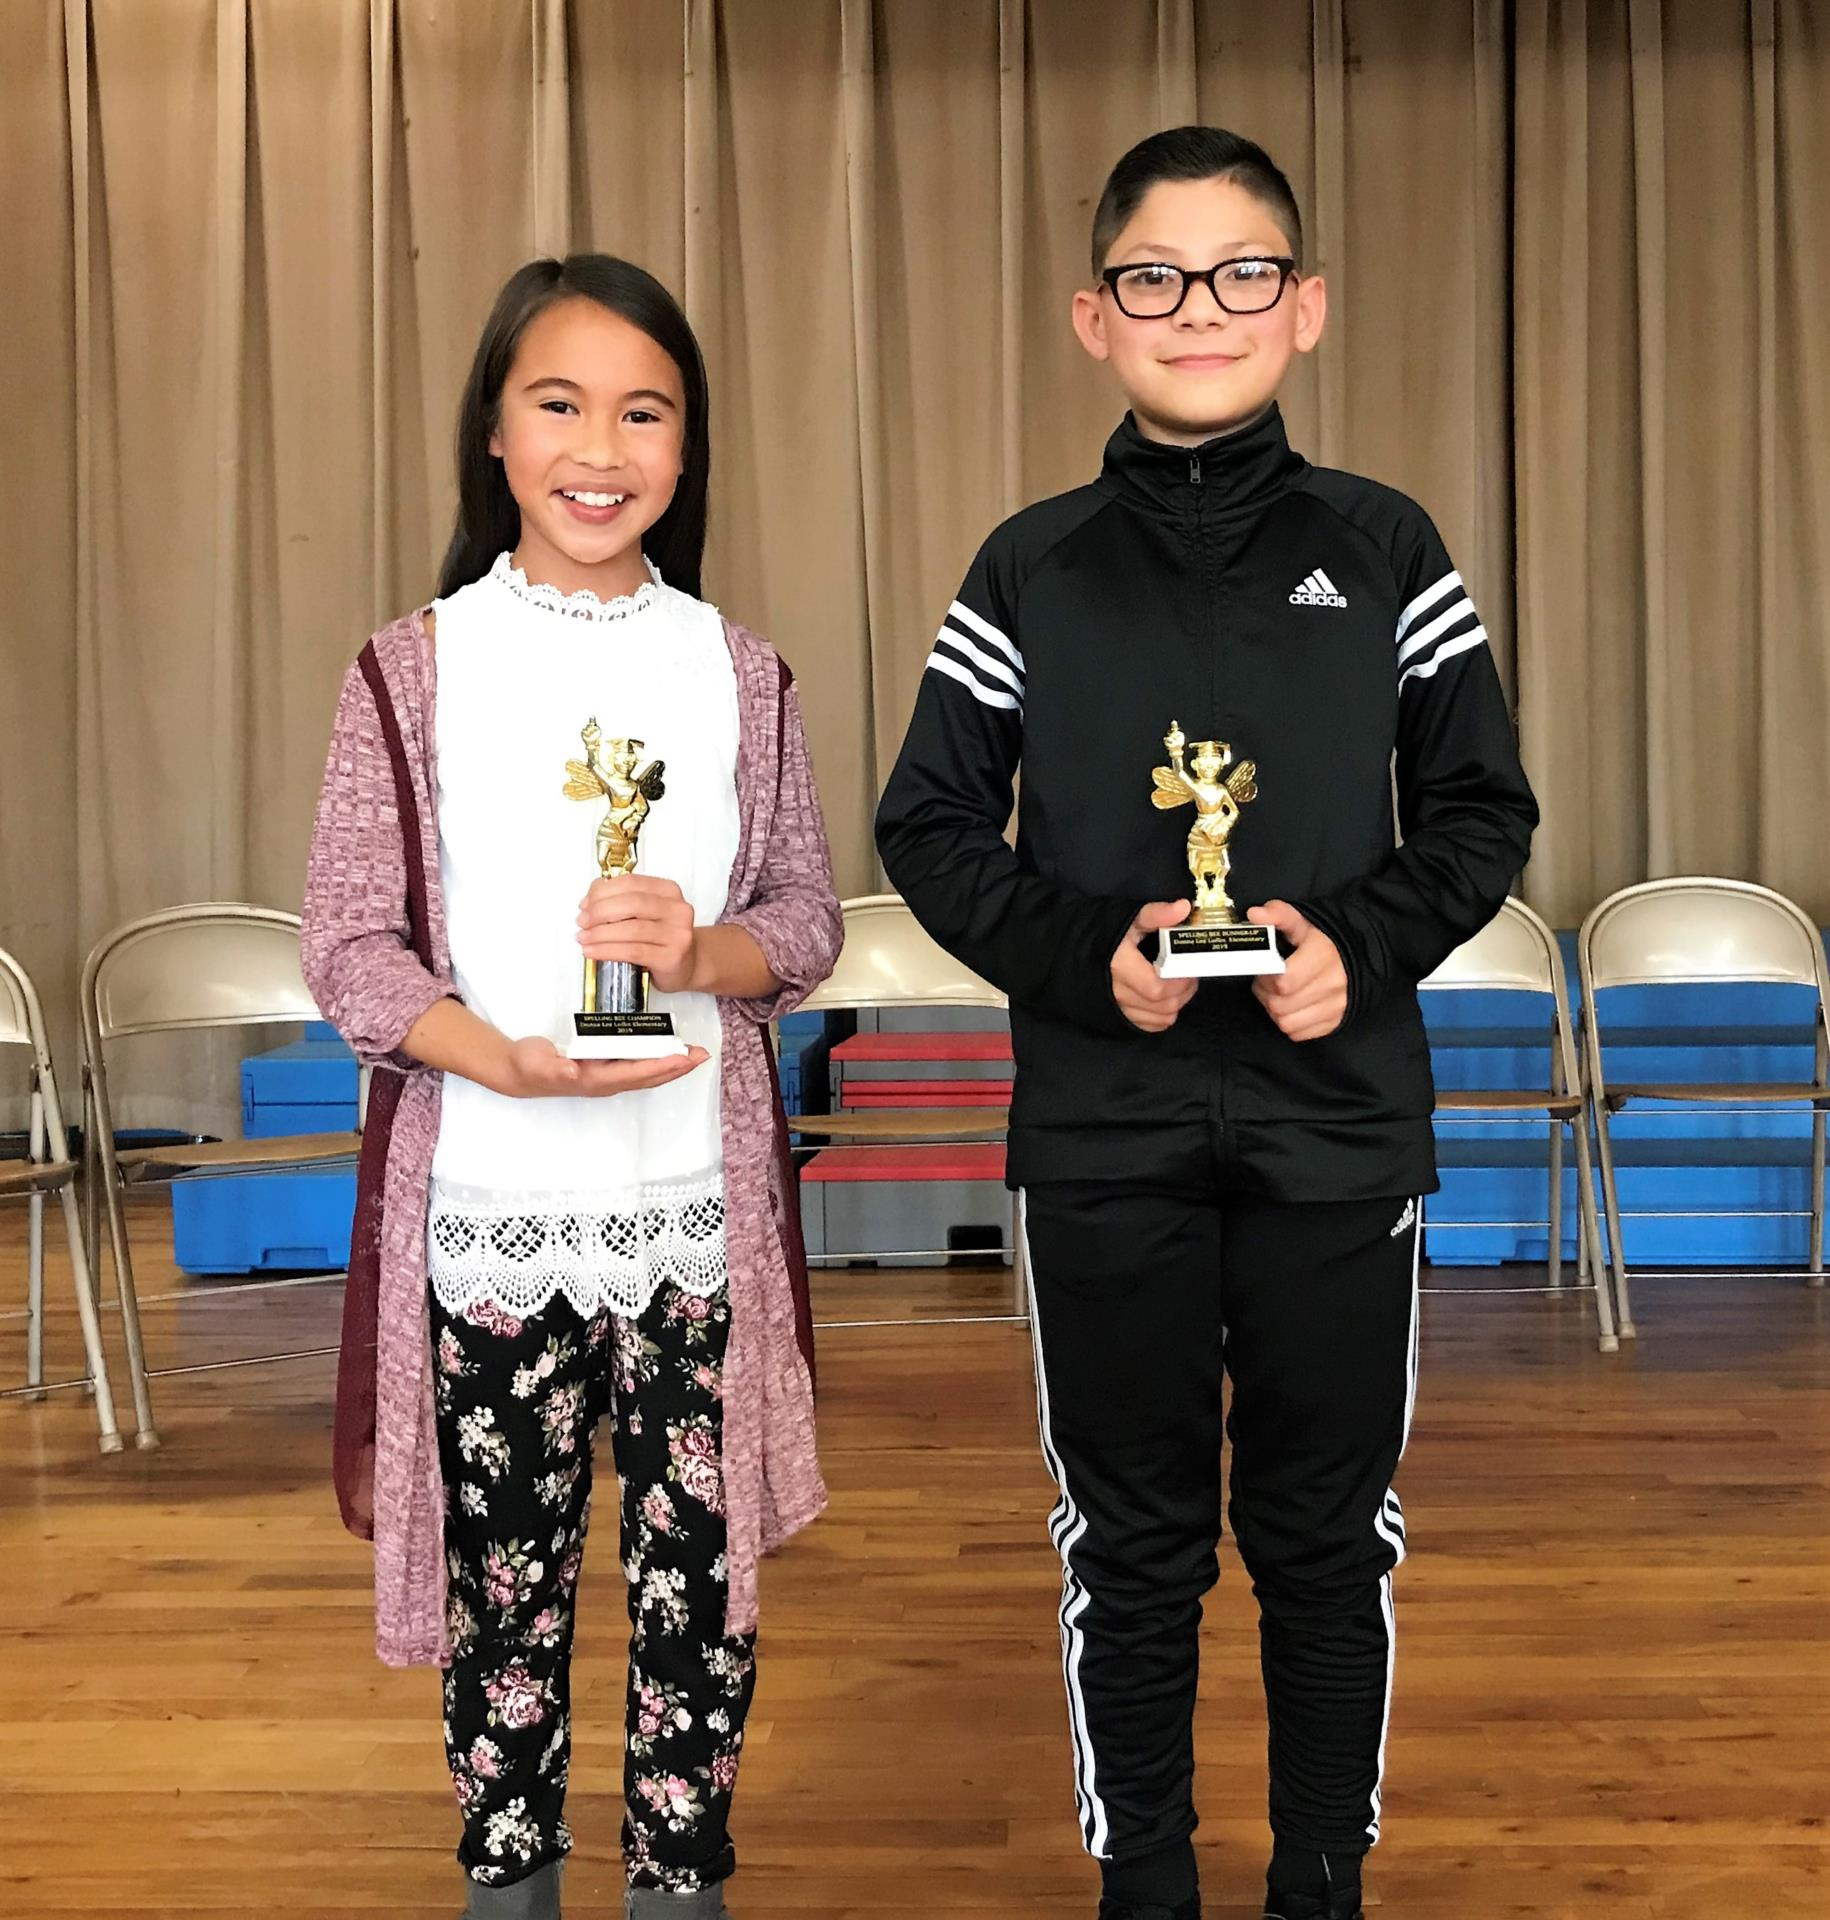 2019 DLL Spelling Bee Winners